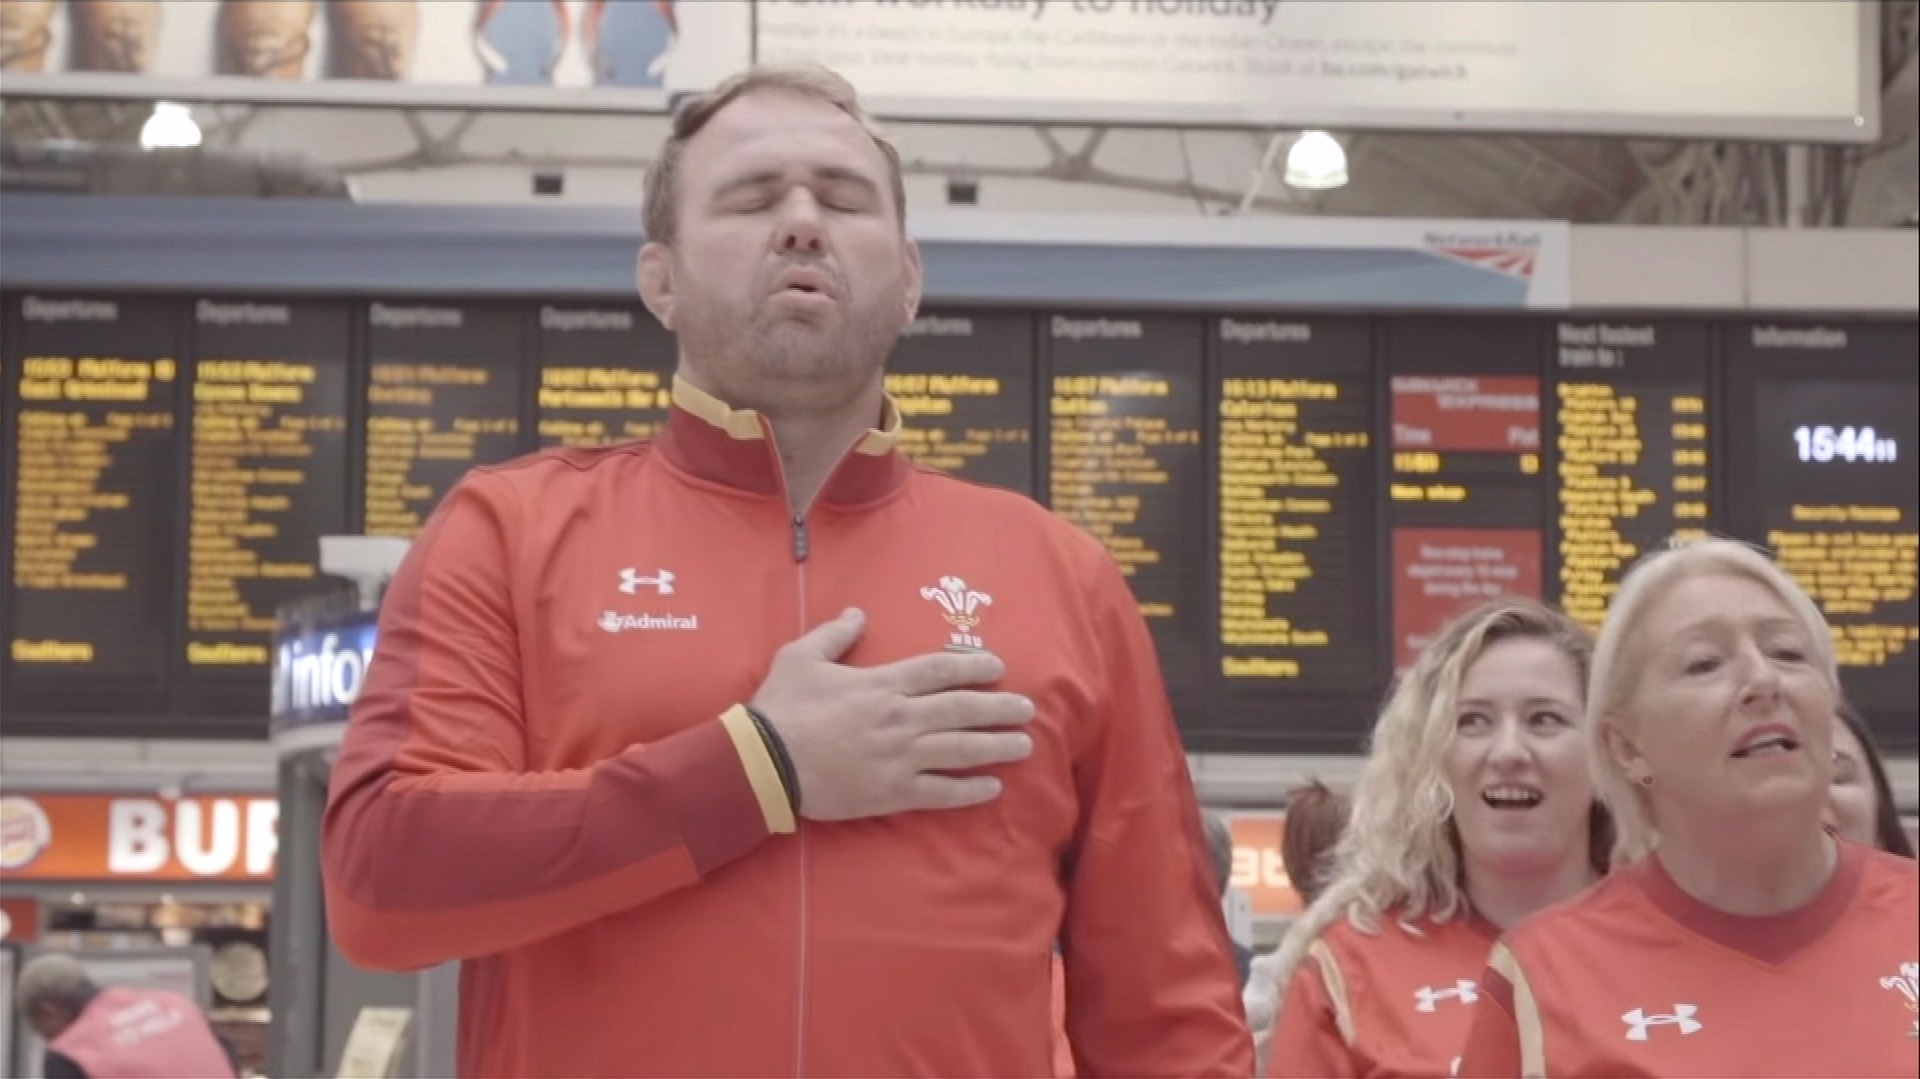 Flashmob shocks Londoners with Welsh national anthem ahead of crunch